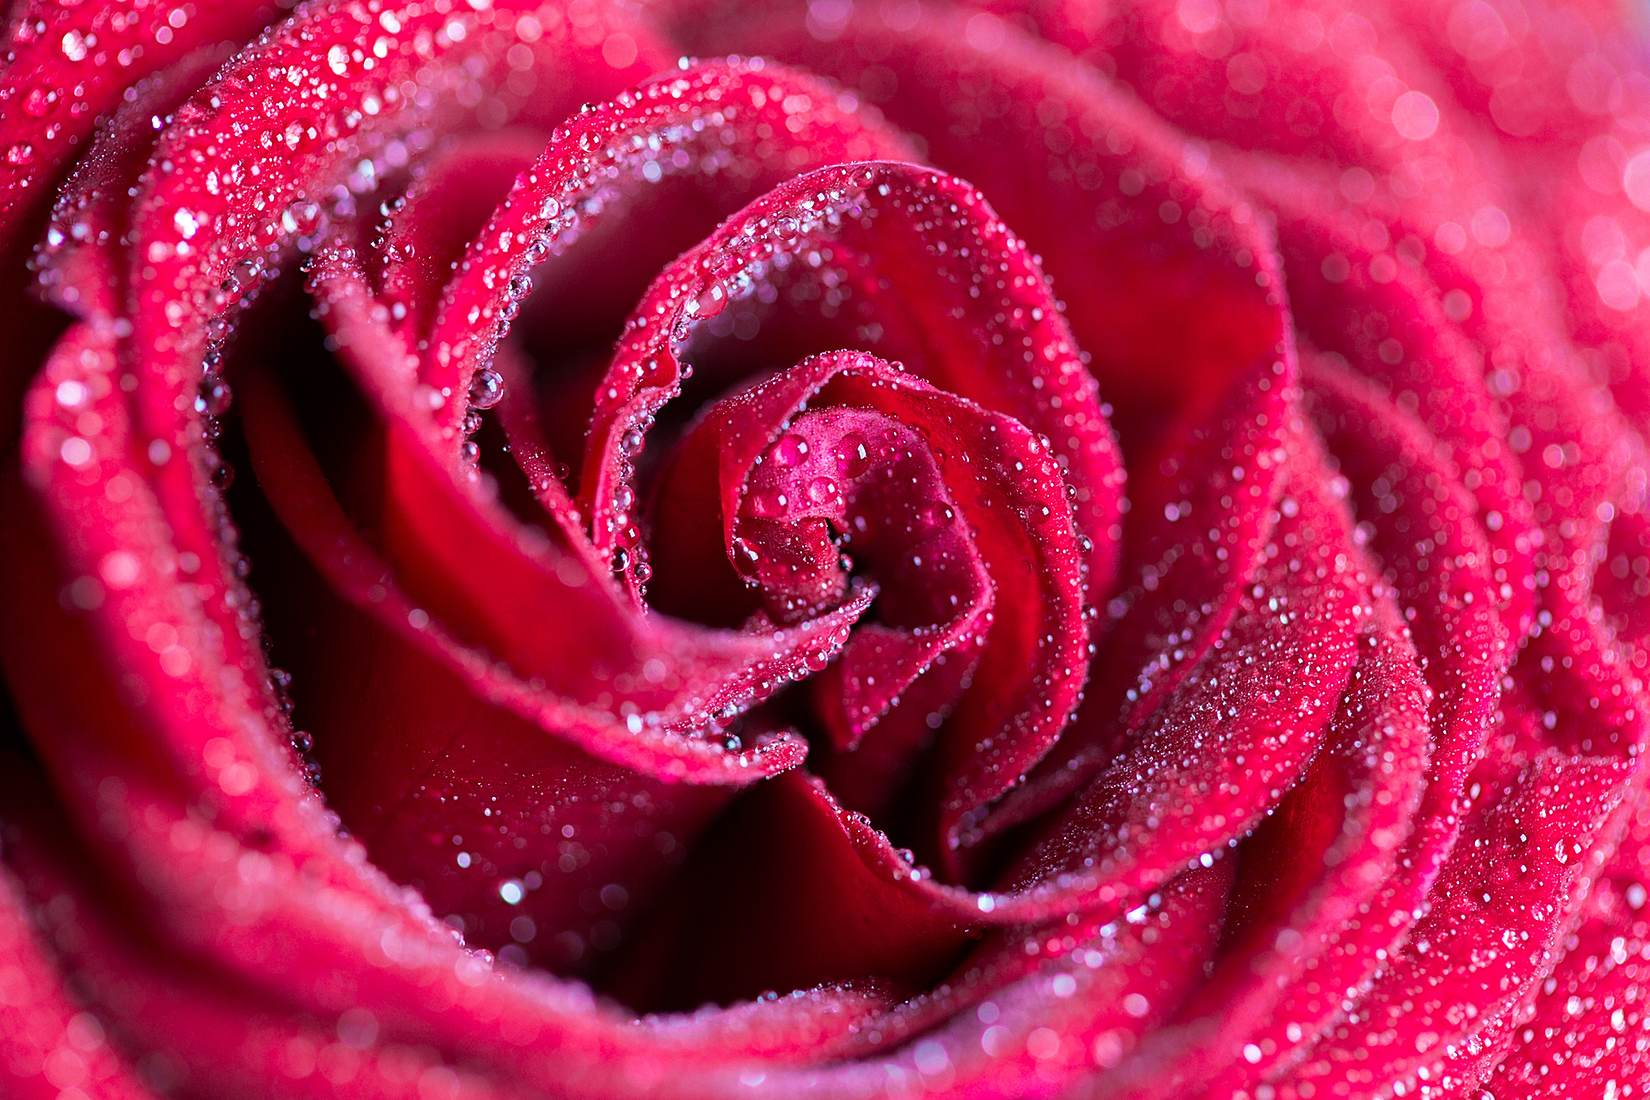 plant-flower-red-rose-water-drops.jpg